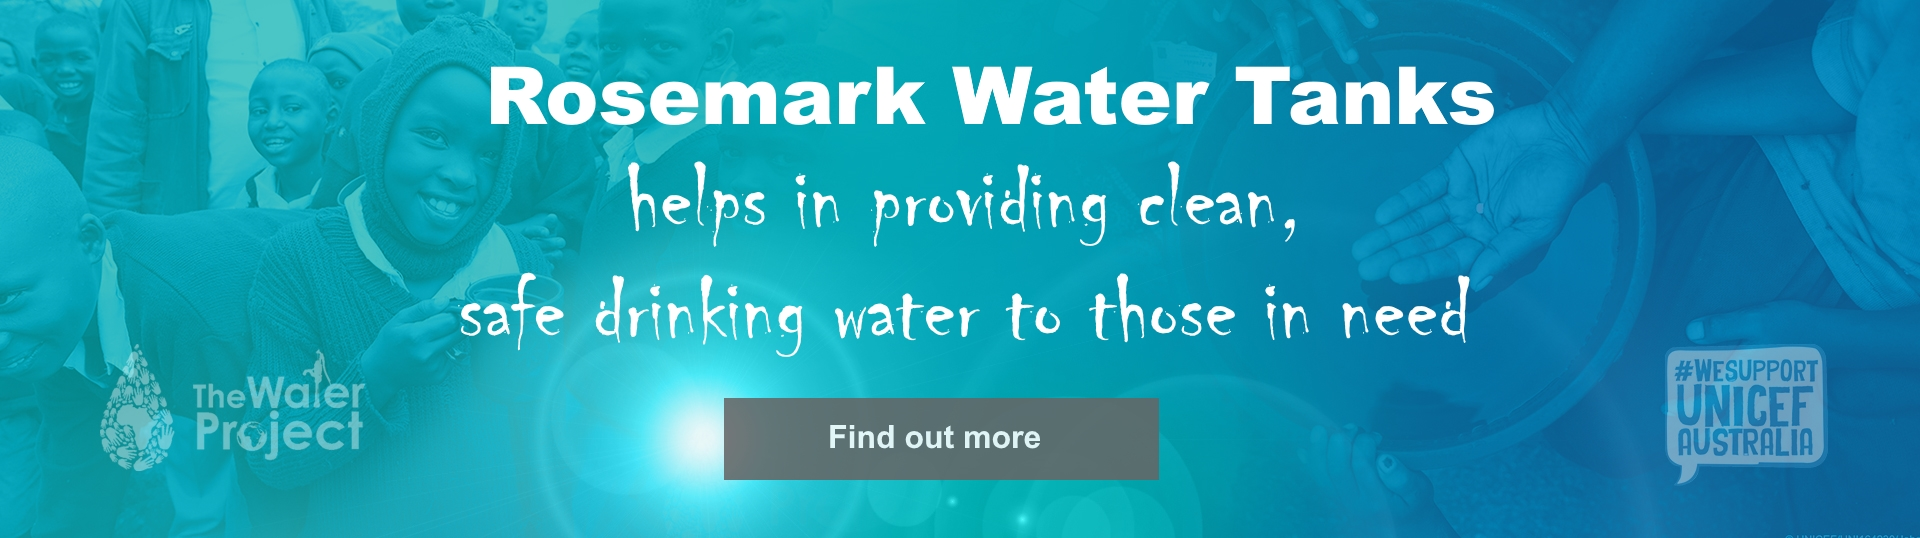 rosemark water tanks charity banner